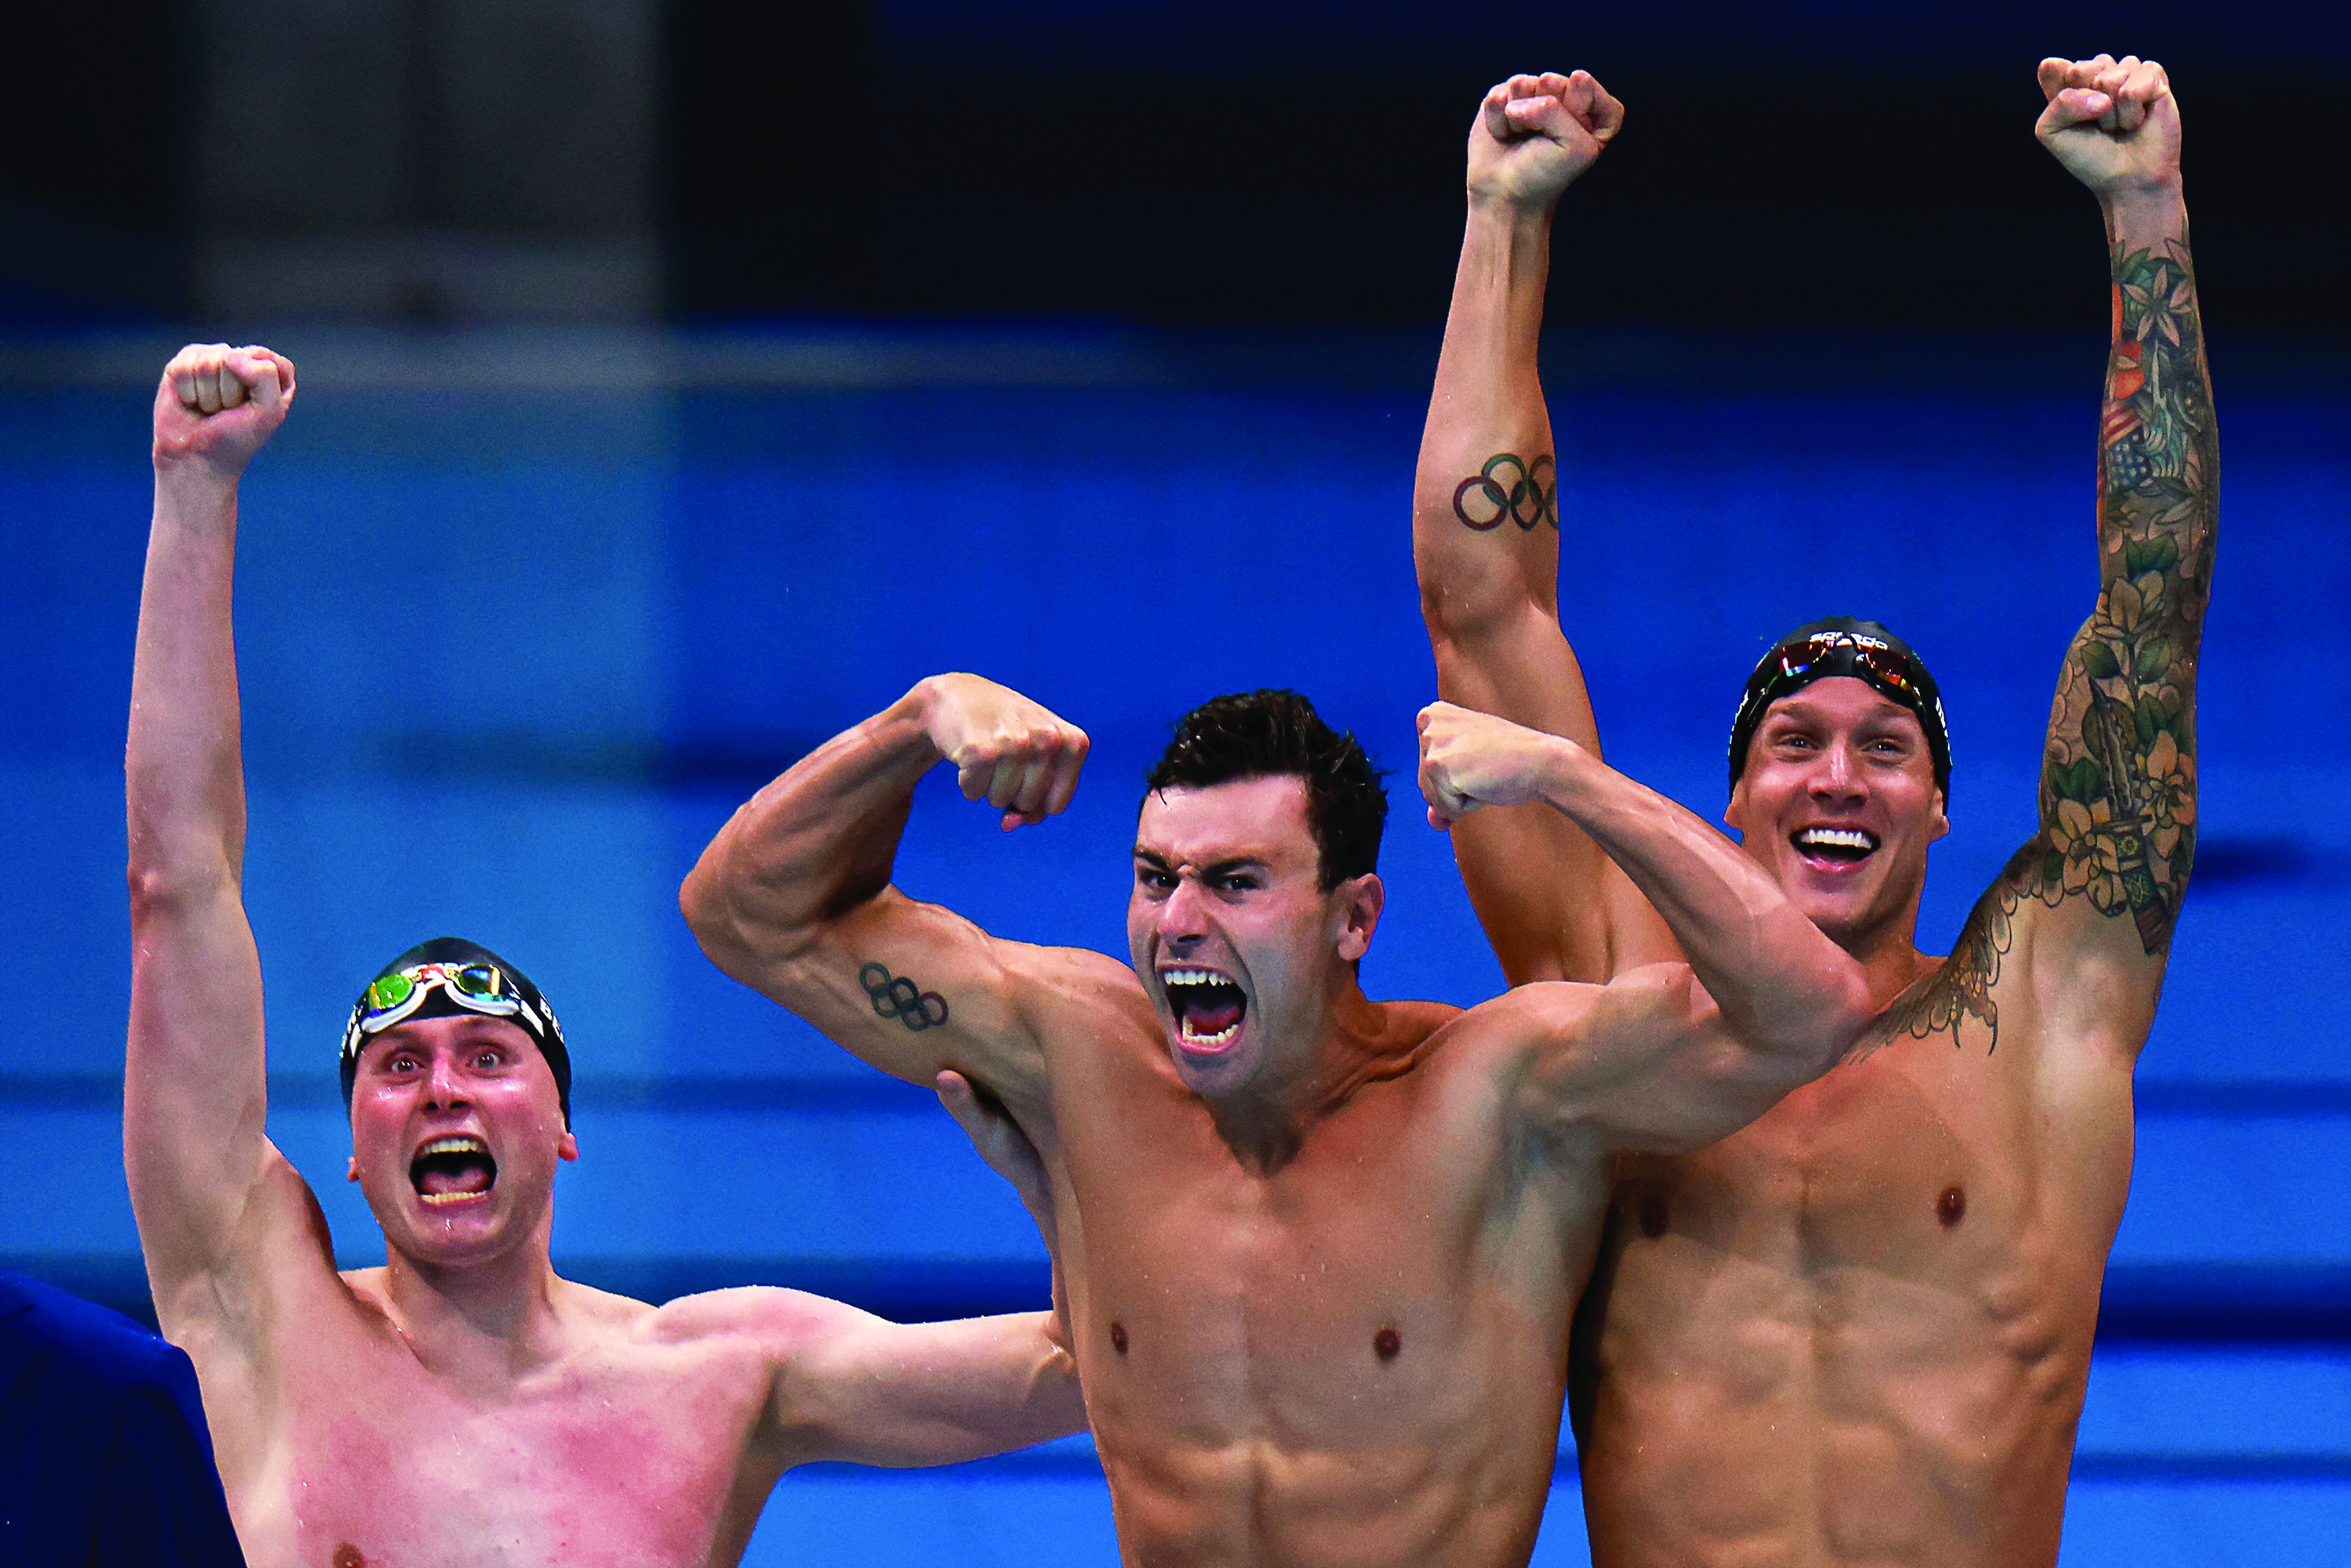 Bowe Becker (left) celebrates with U.S. teammates Blake Pieroni and Caeleb Dressel after winning the gold in the men's 4x100 freestyle relay swimming event at the Tokyo Olympics.